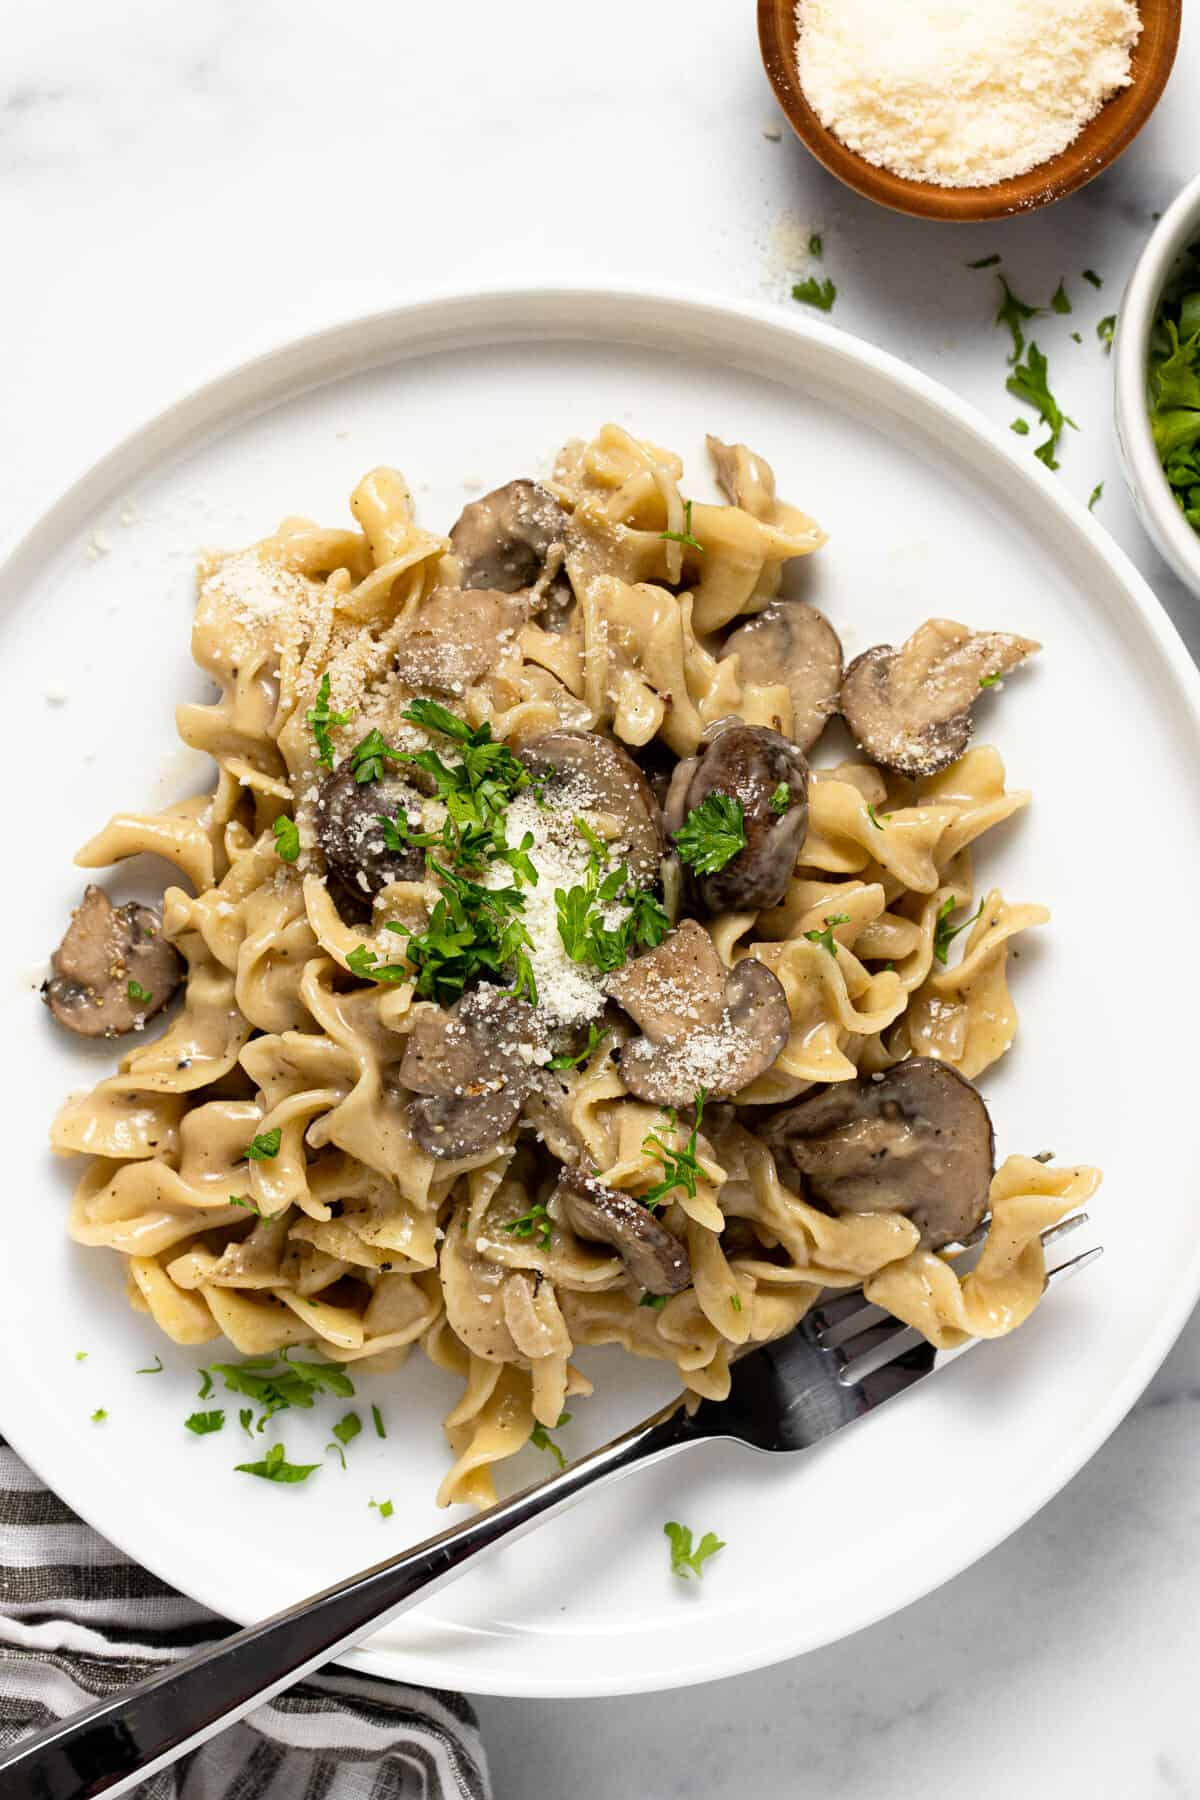 Large white plate filled with one pot mushroom stroganoff garnished with parsley